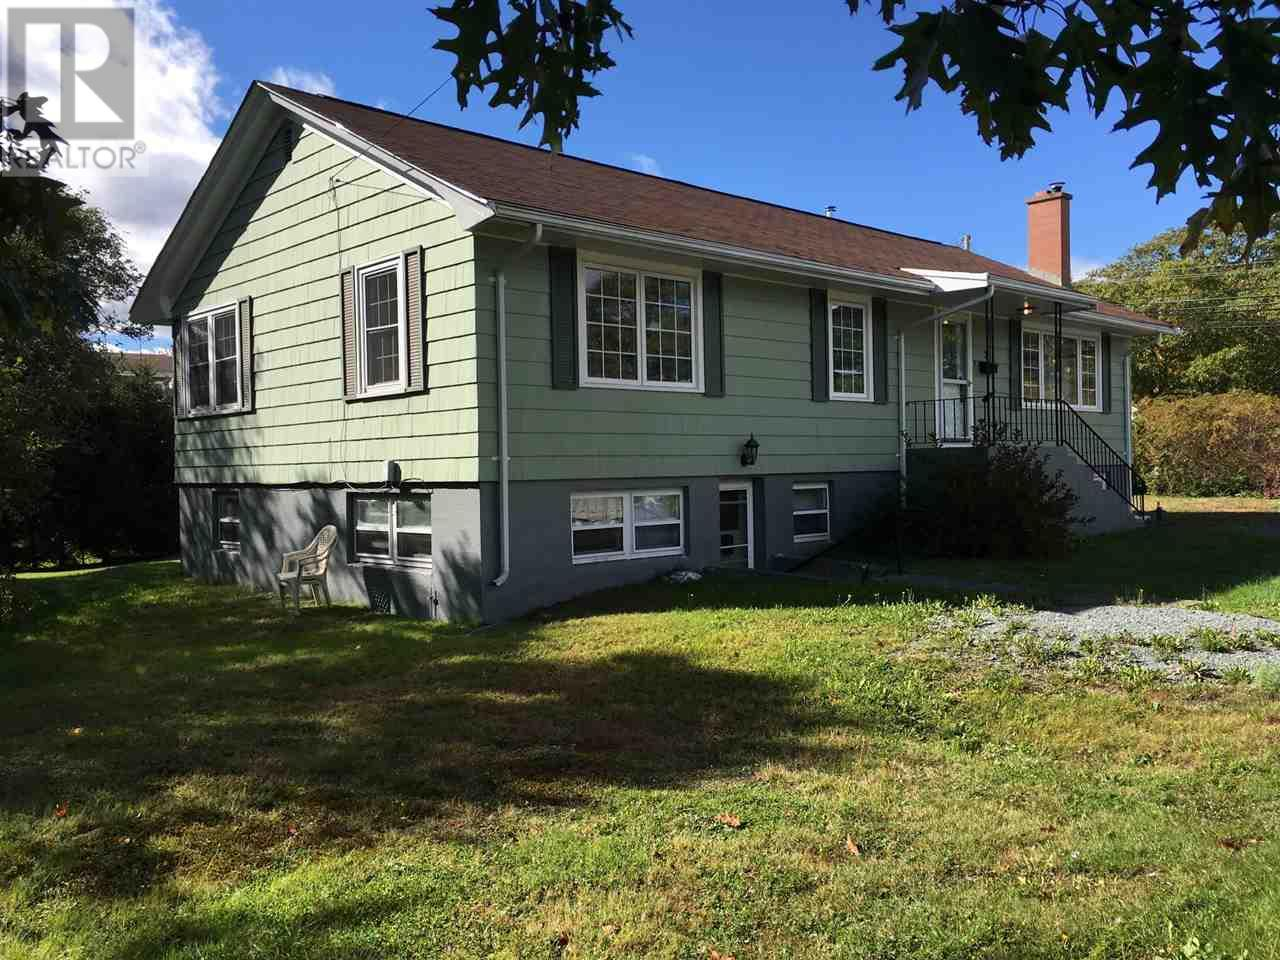 Removed: 3 Colpitt Lake Road, Halifax, NS - Removed on 2018-11-23 04:30:08